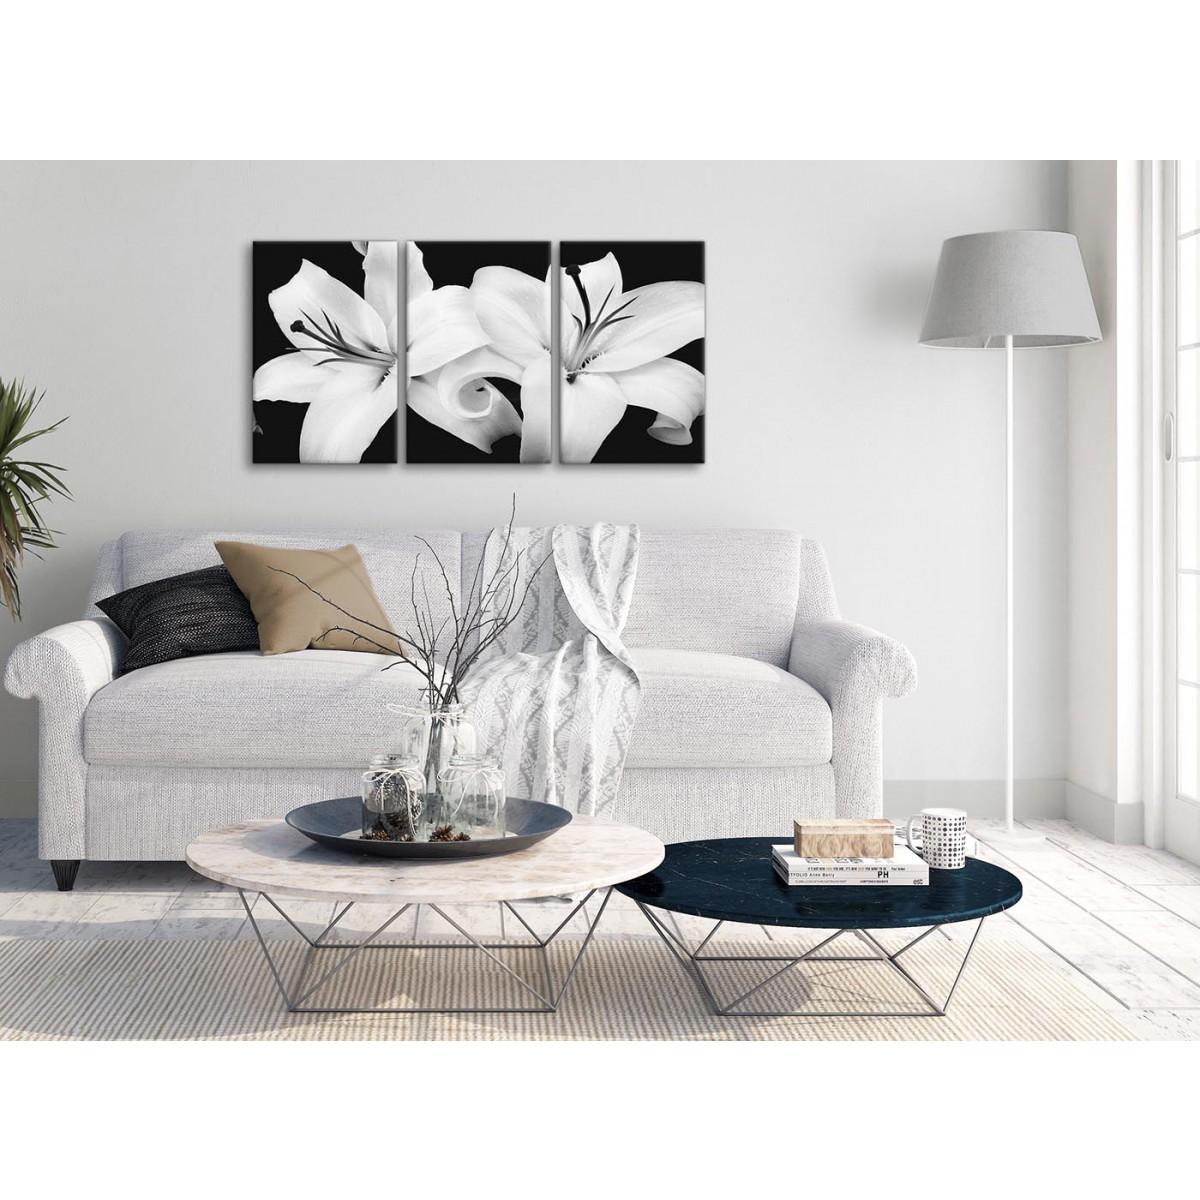 Black White Lily Flower Bedroom Canvas Wall Art